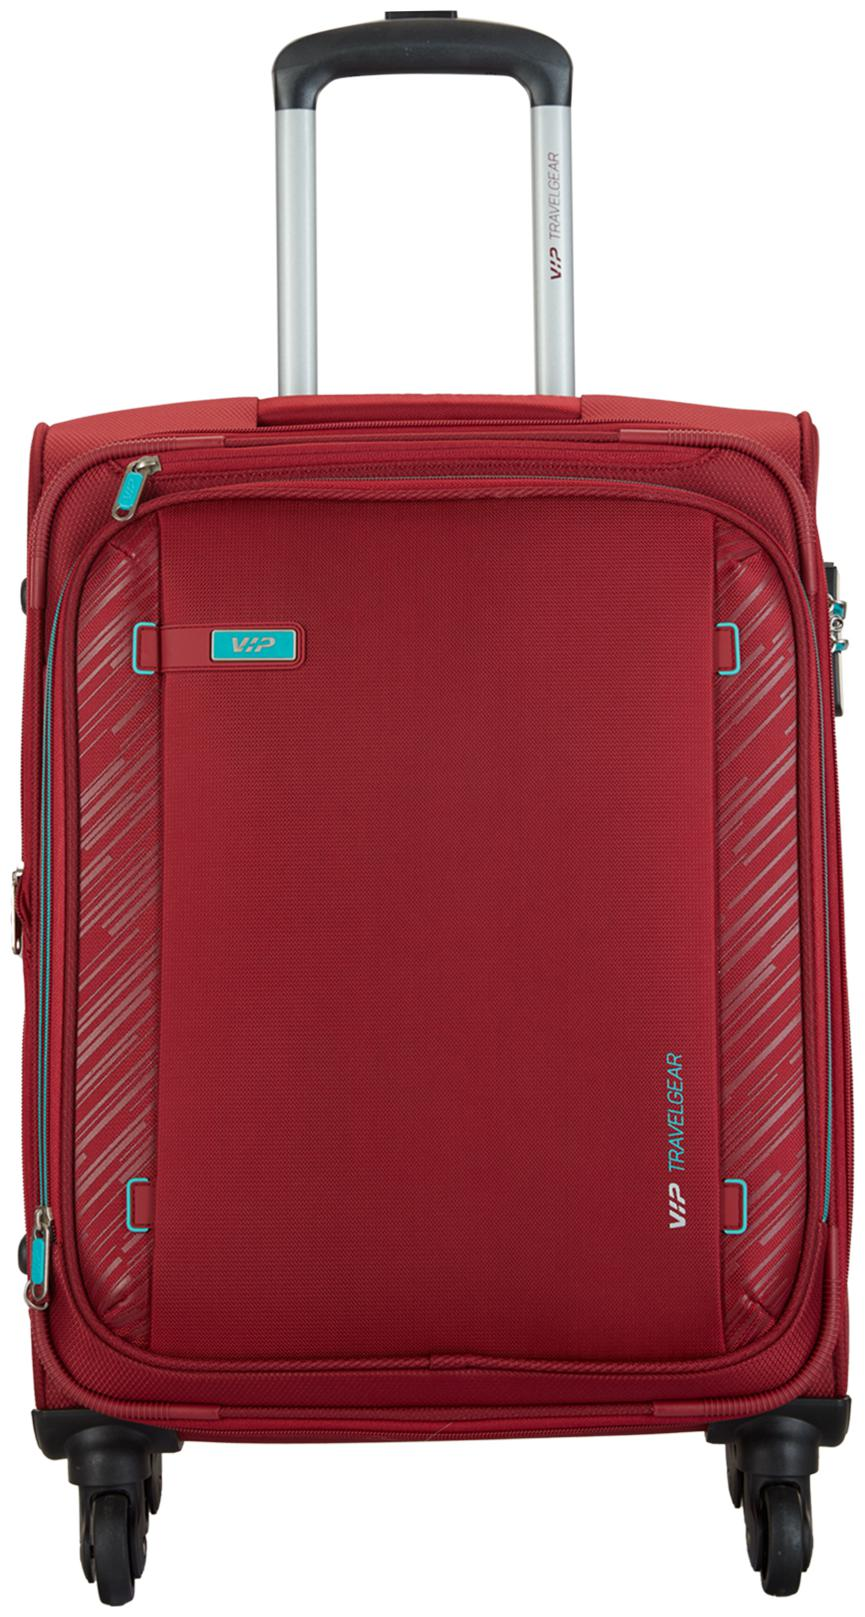 https://assetscdn1.paytm.com/images/catalog/product/B/BA/BAGVIP-SUITCASEVIP-954375DF4E7615/1563364045427_0..jpg